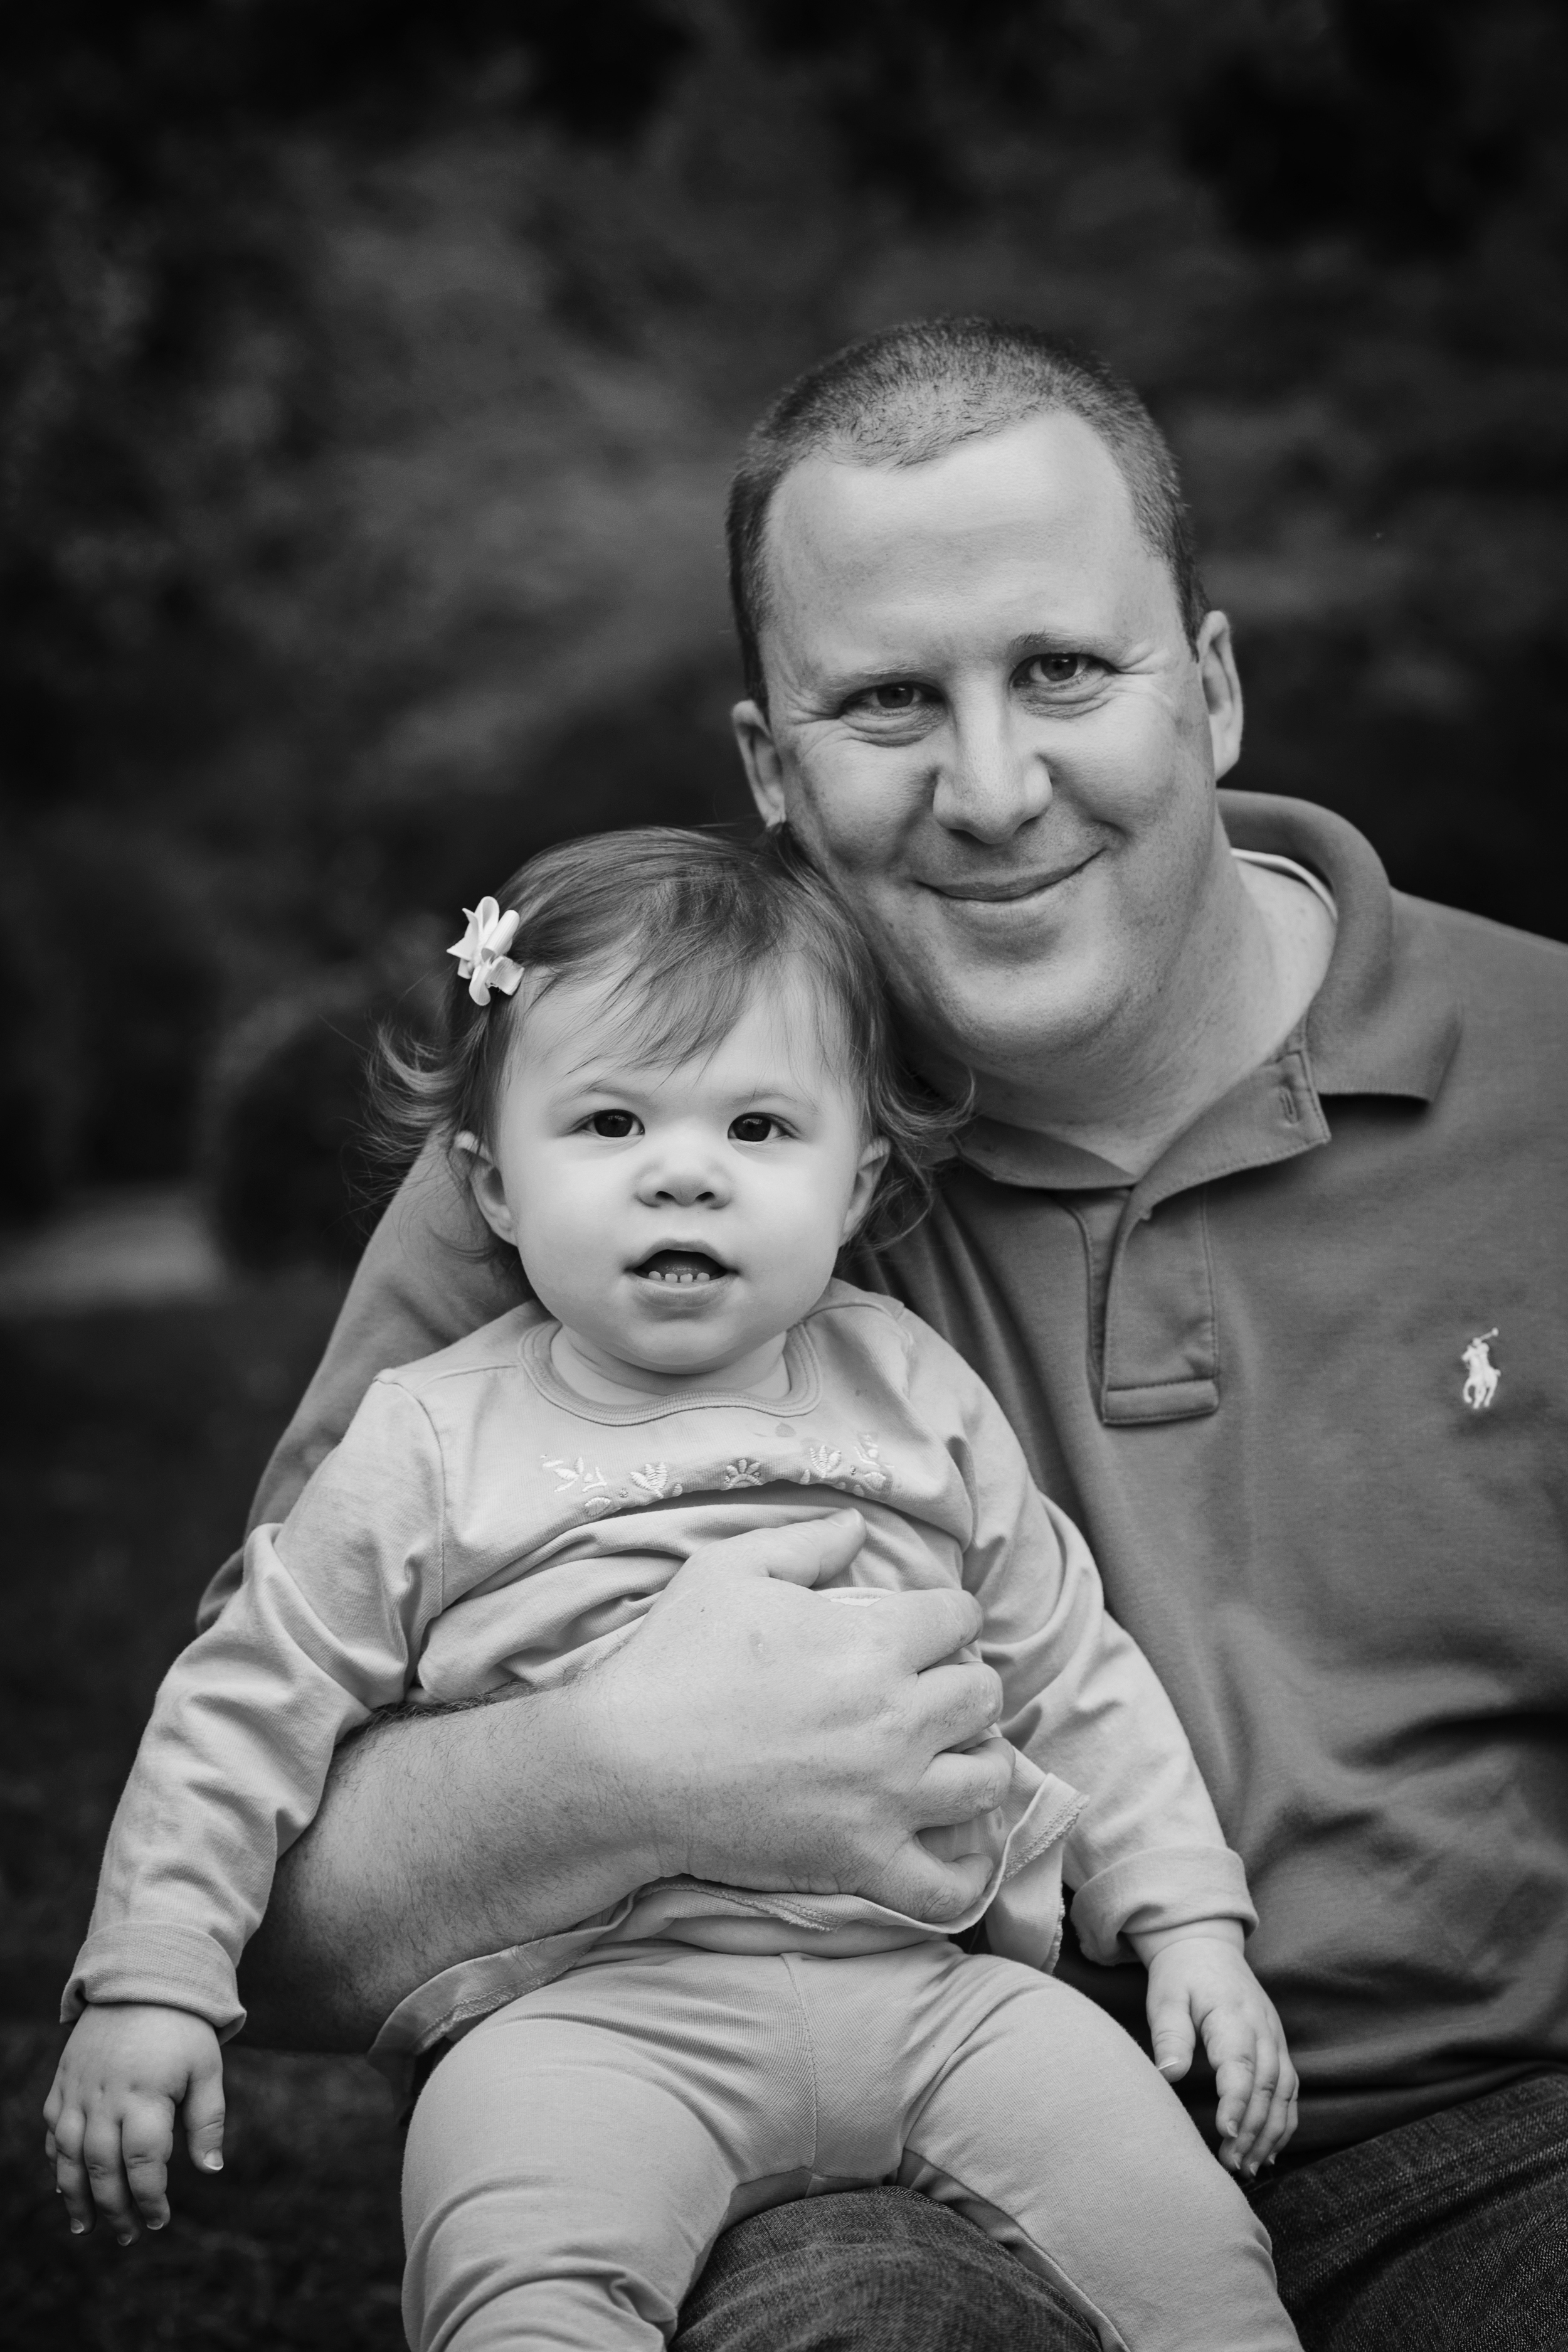 Daddy and Daughter black and White Portrait Photography Kate Montaner